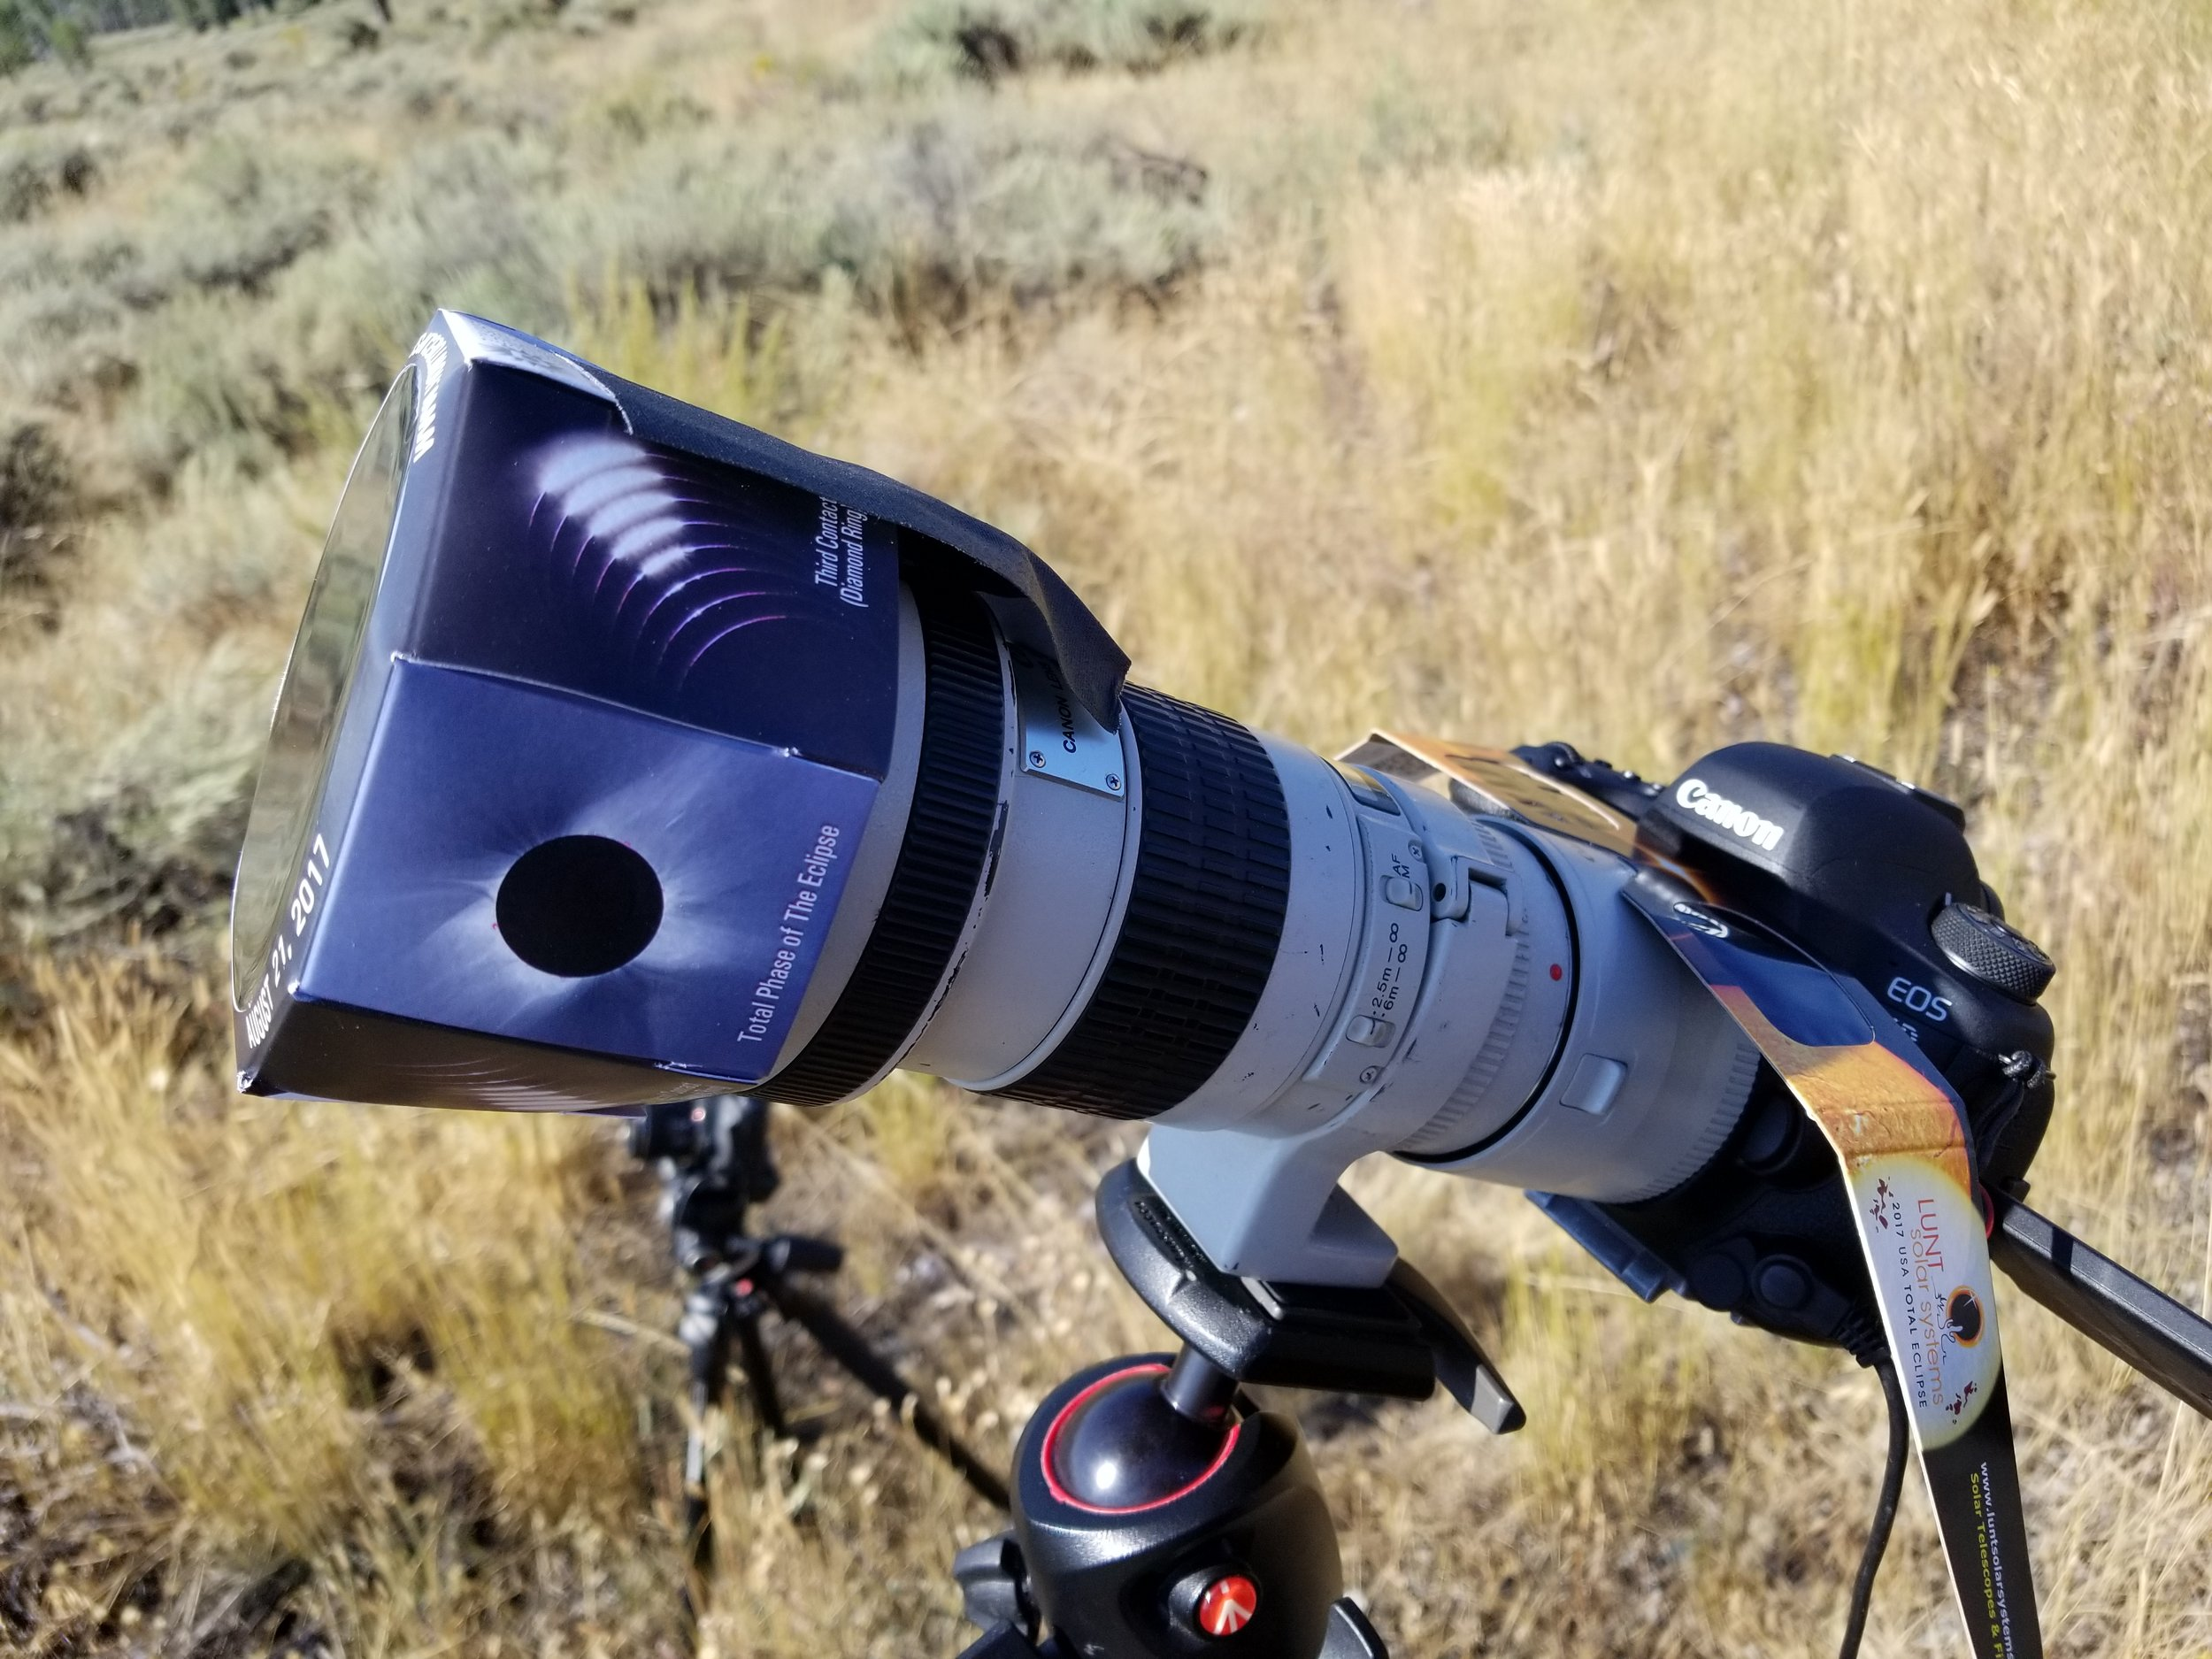 Daystar Solar filter. Canon 300mm with 2x extender.